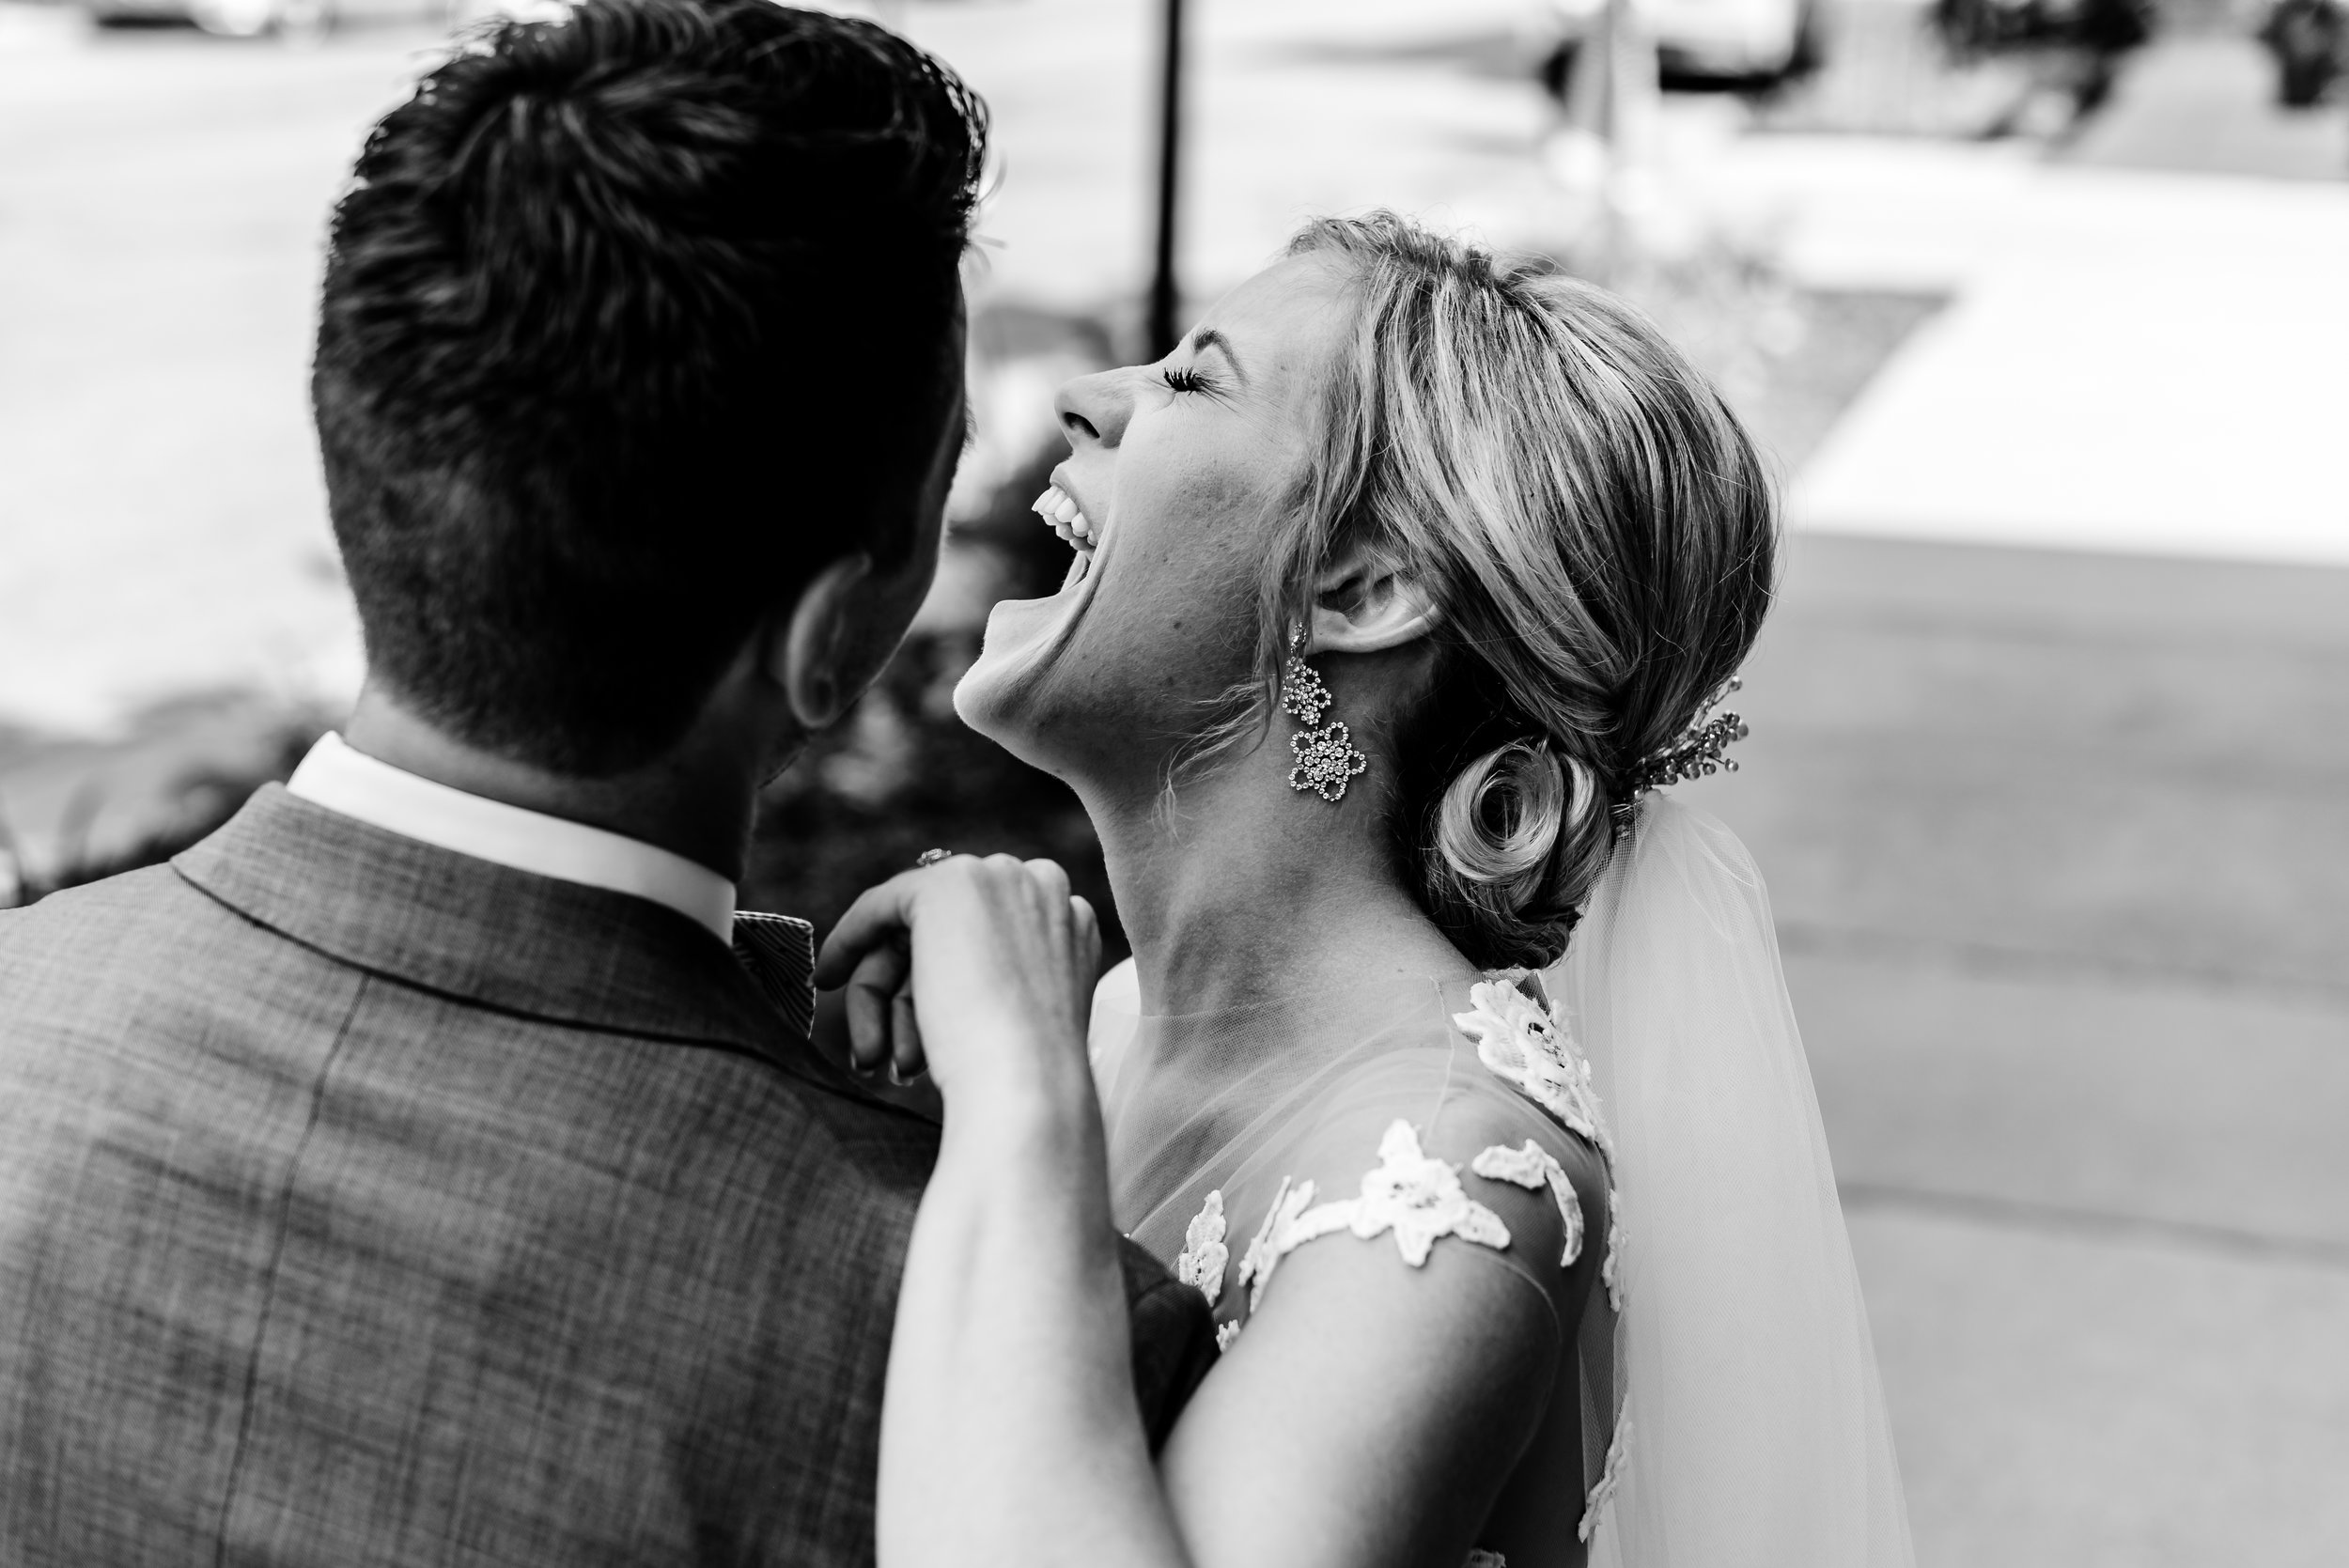 Muse Event Center Wedding - Bride and Groom Outside - Minneapolis North Look Wedding Photographer